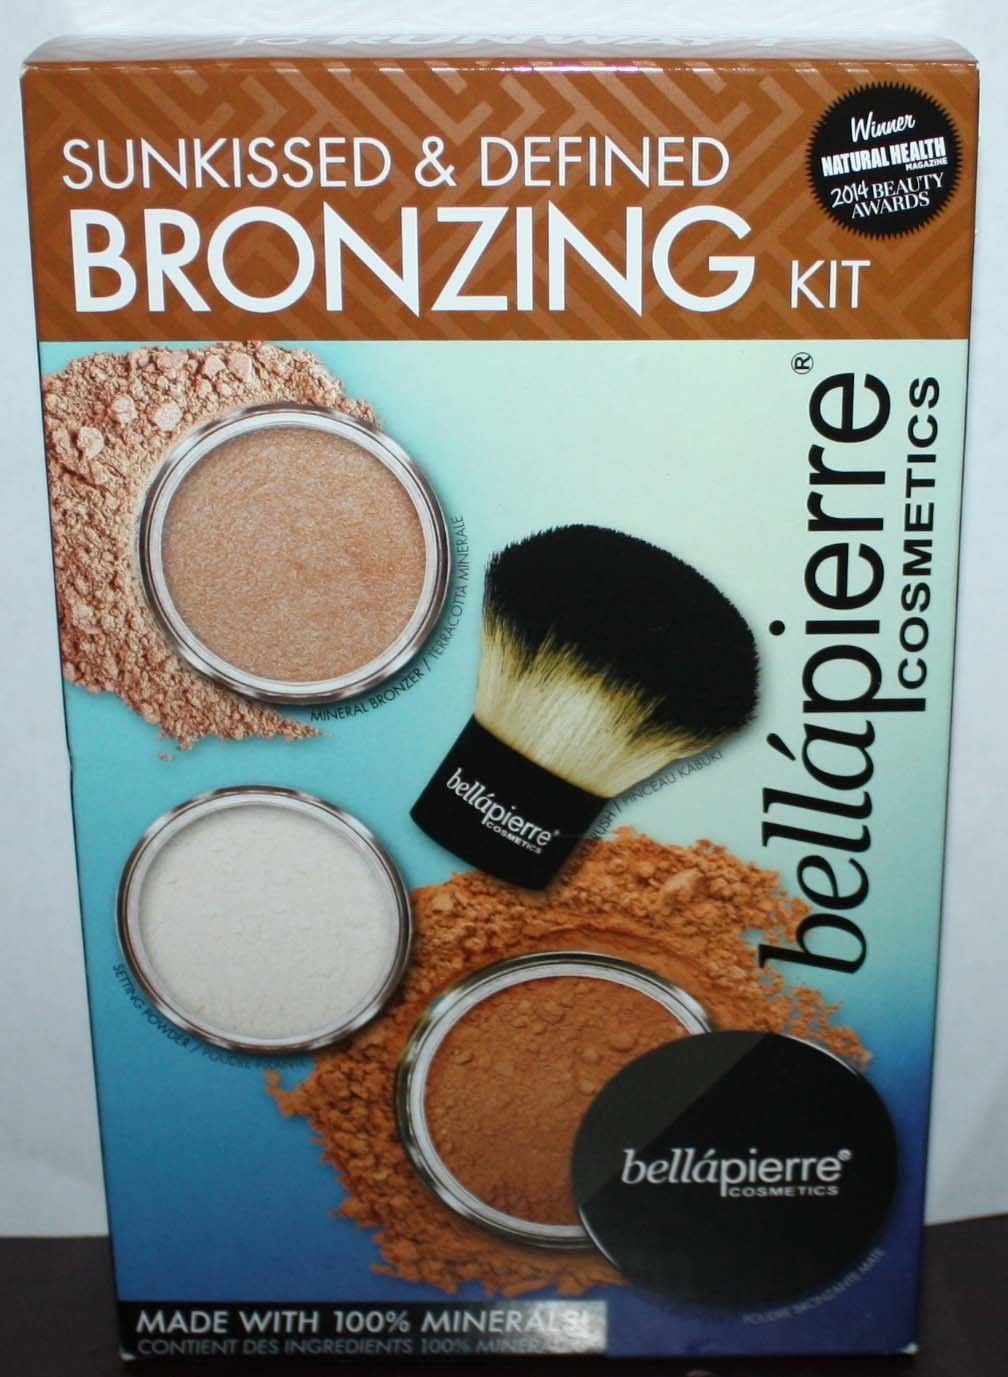 Bella Pierre Sunkissed & Defined Bronzing Kit *Bronzers/Powder/Kabuki Brush 12170